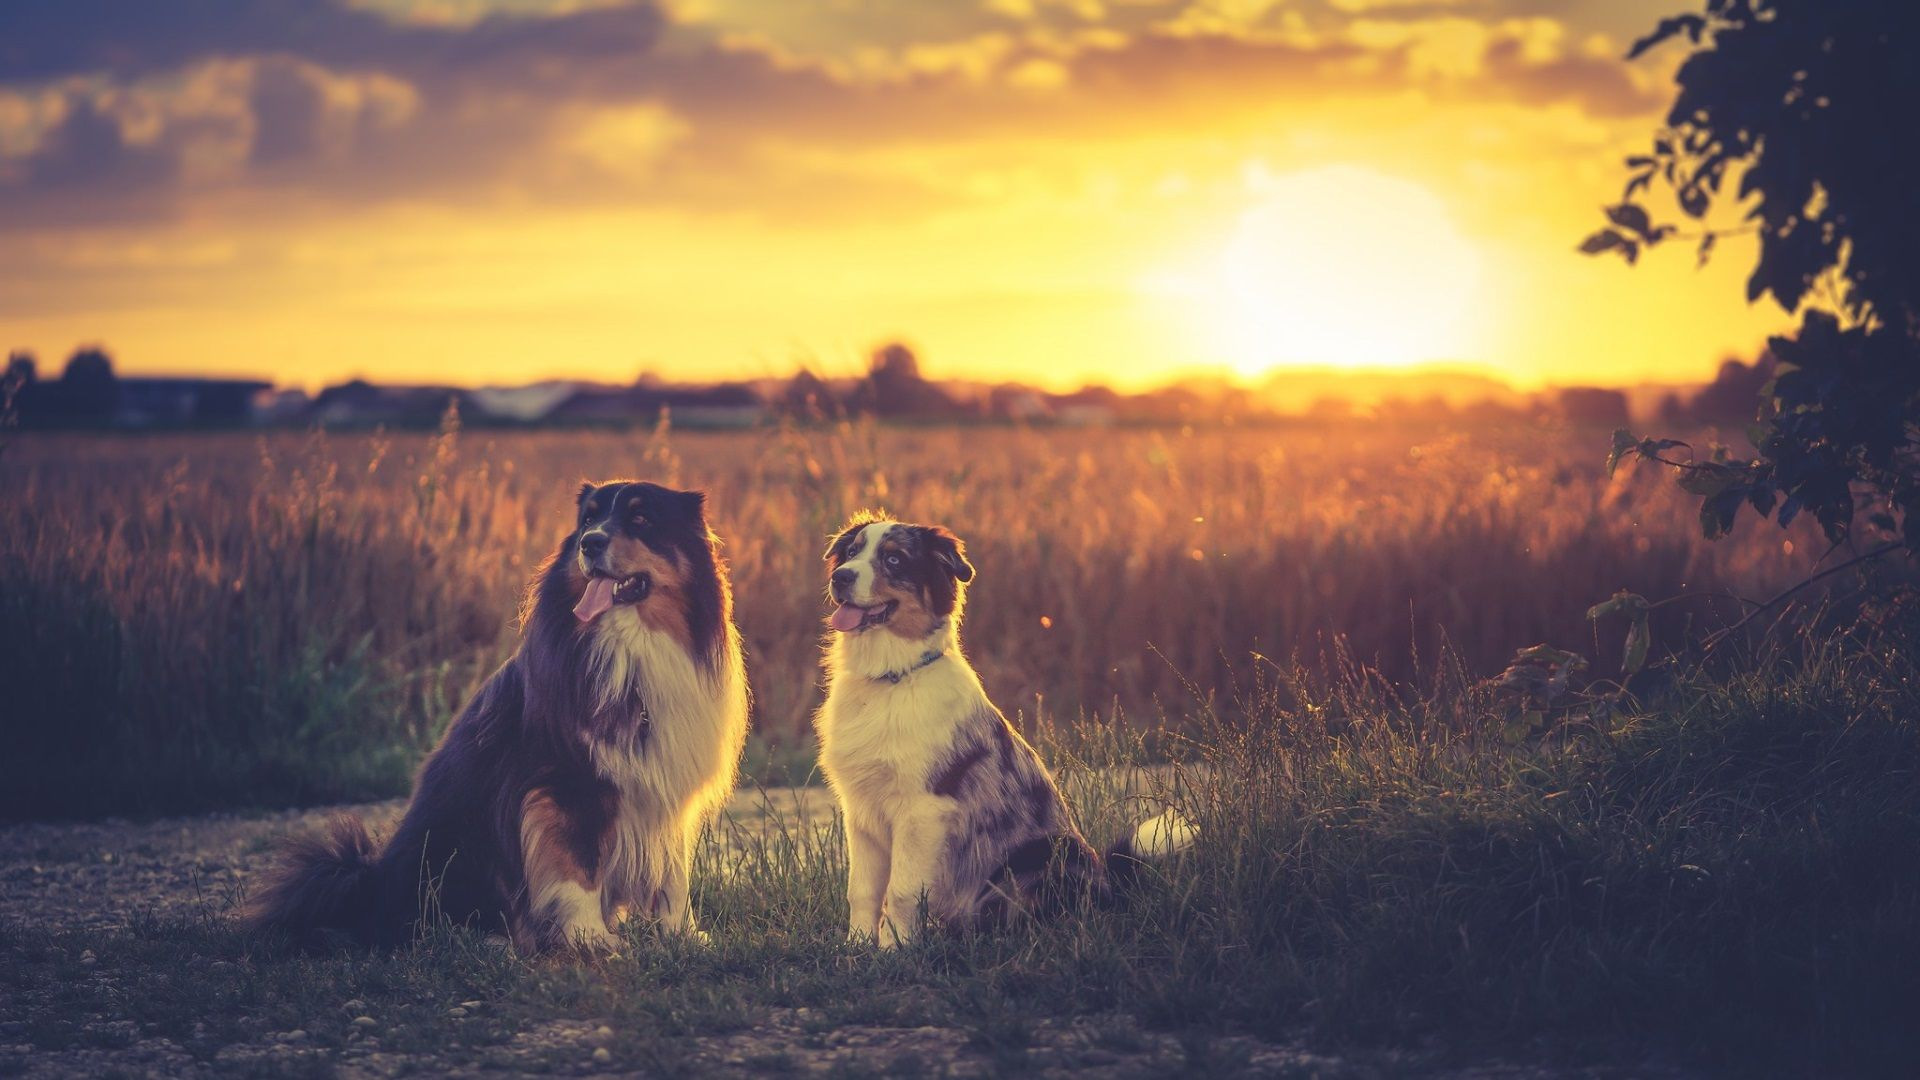 1920x1080 Australian Shepherd Full Screen Wallpaper Hd Australian Shepherd Animals Aussie Dogs